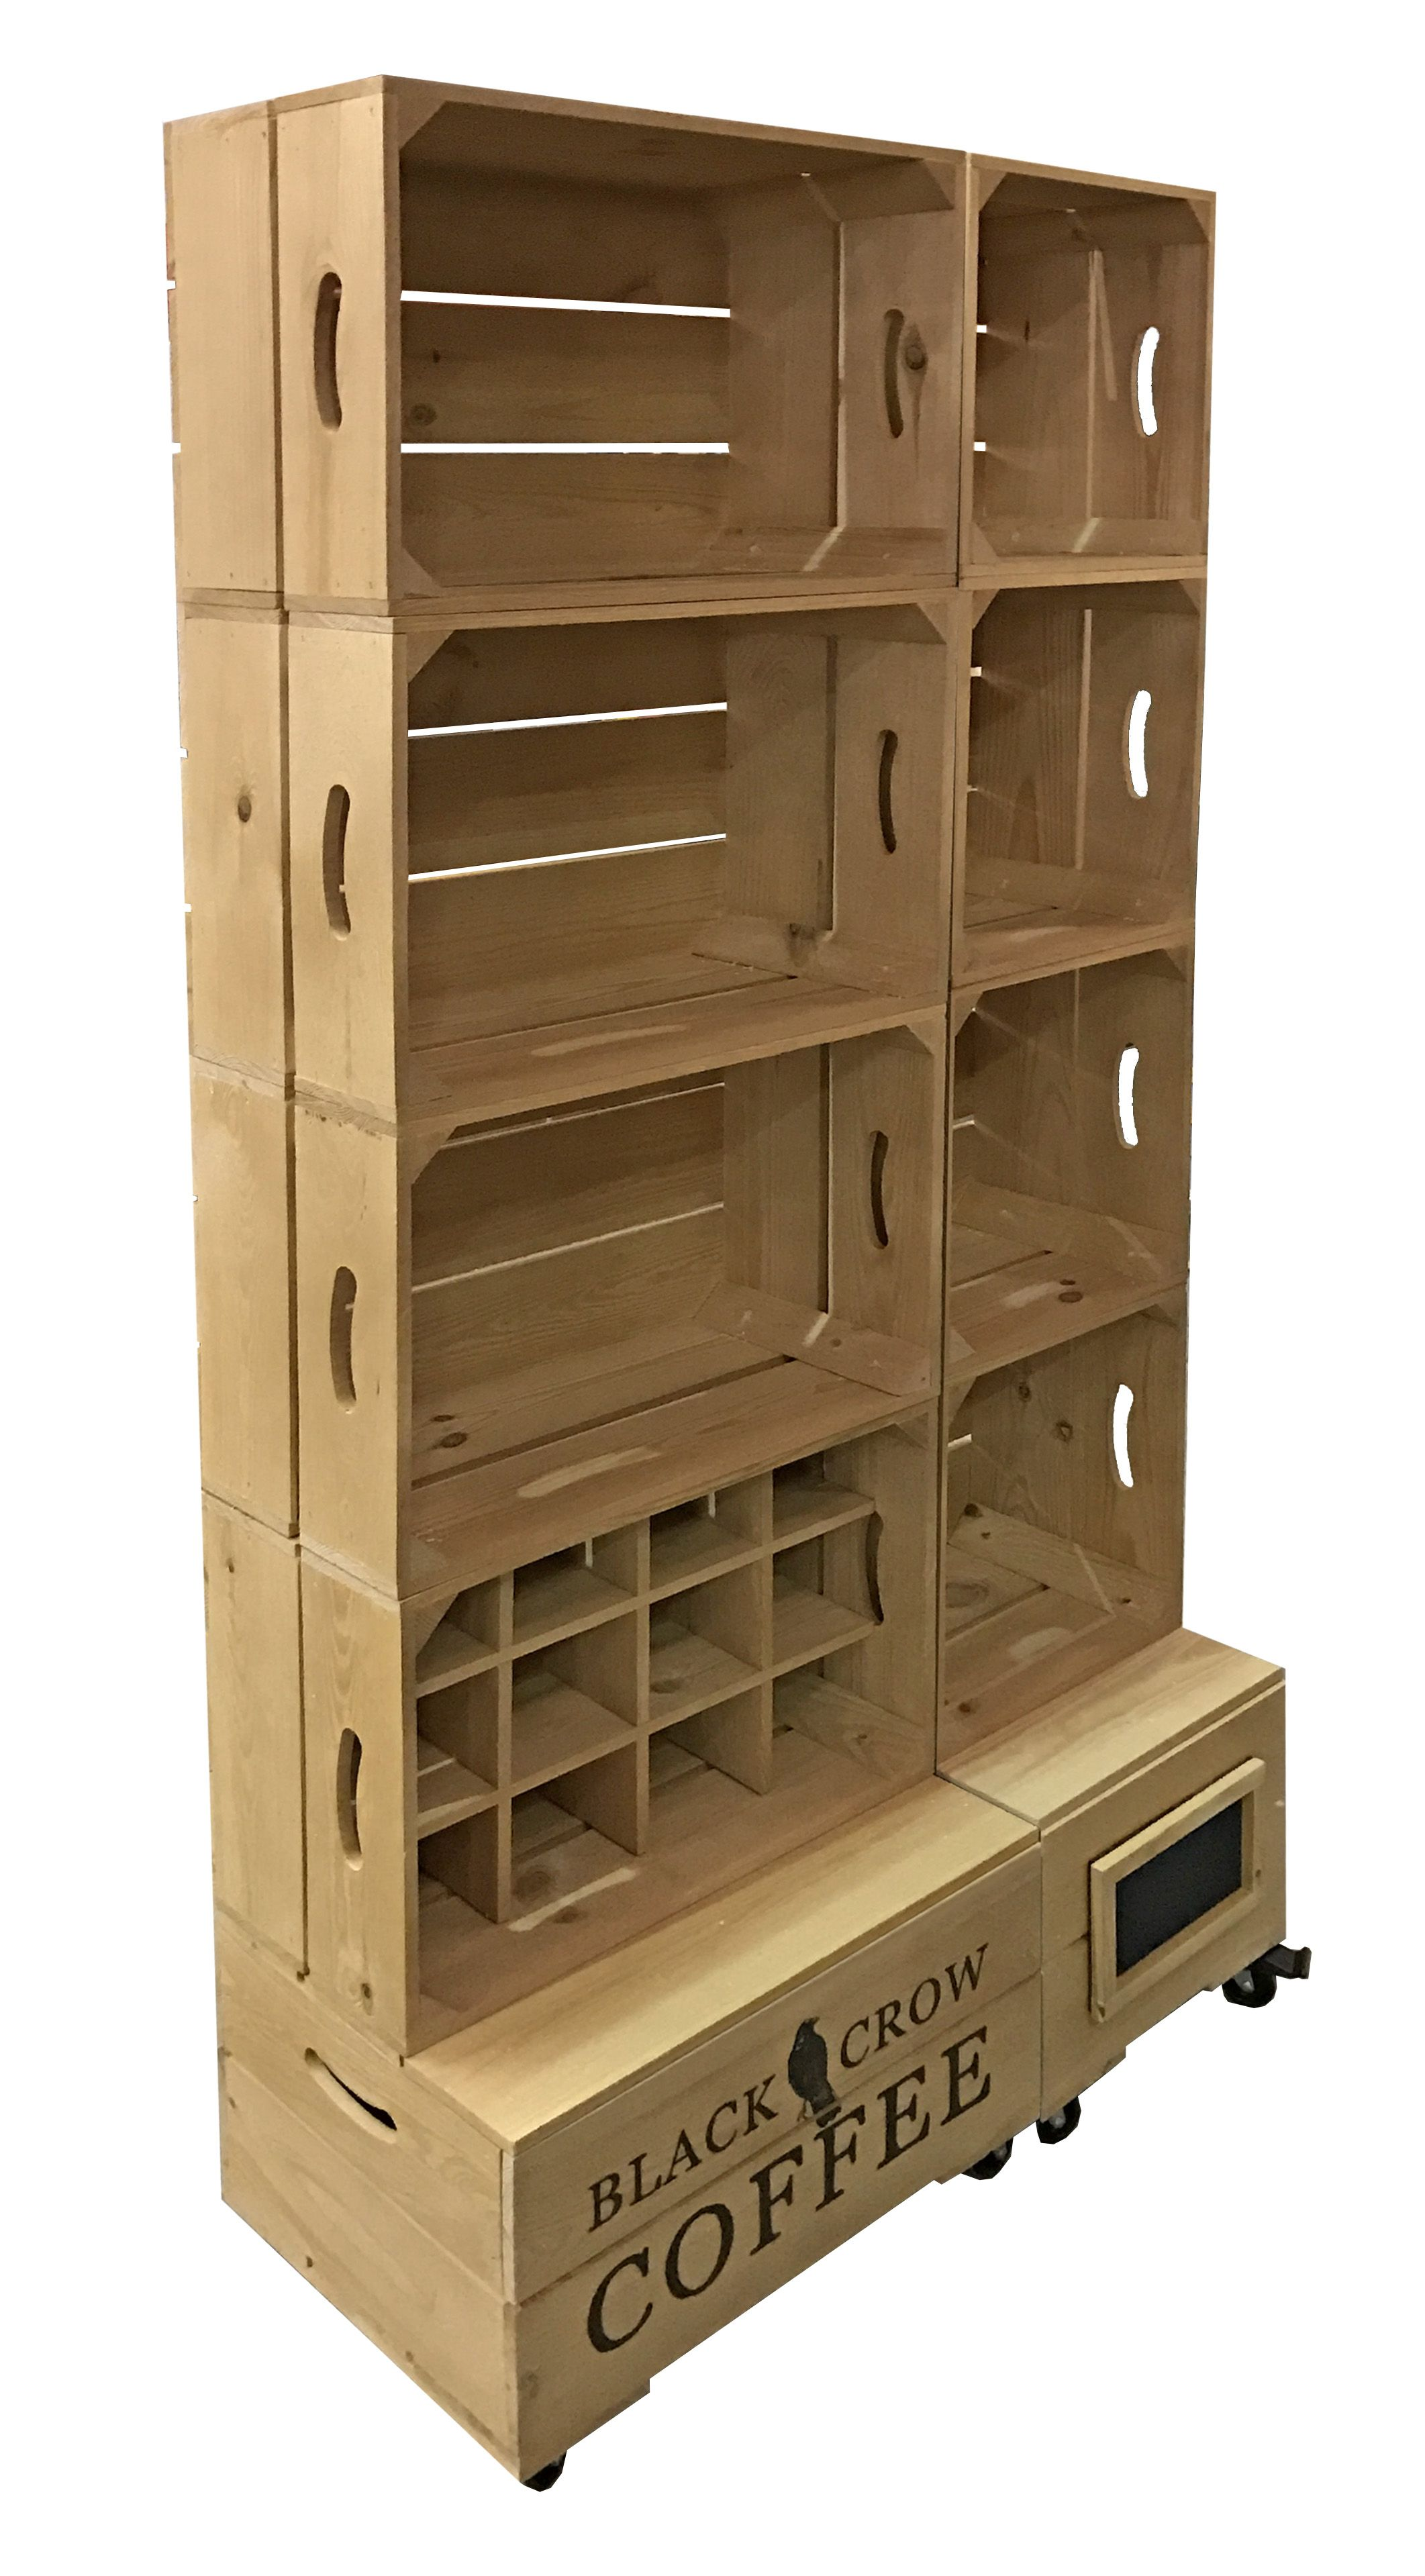 Branded Wooden Crates For Retail Display And Point Of Sale Apple Crate Shelves Retail Display Display Furniture